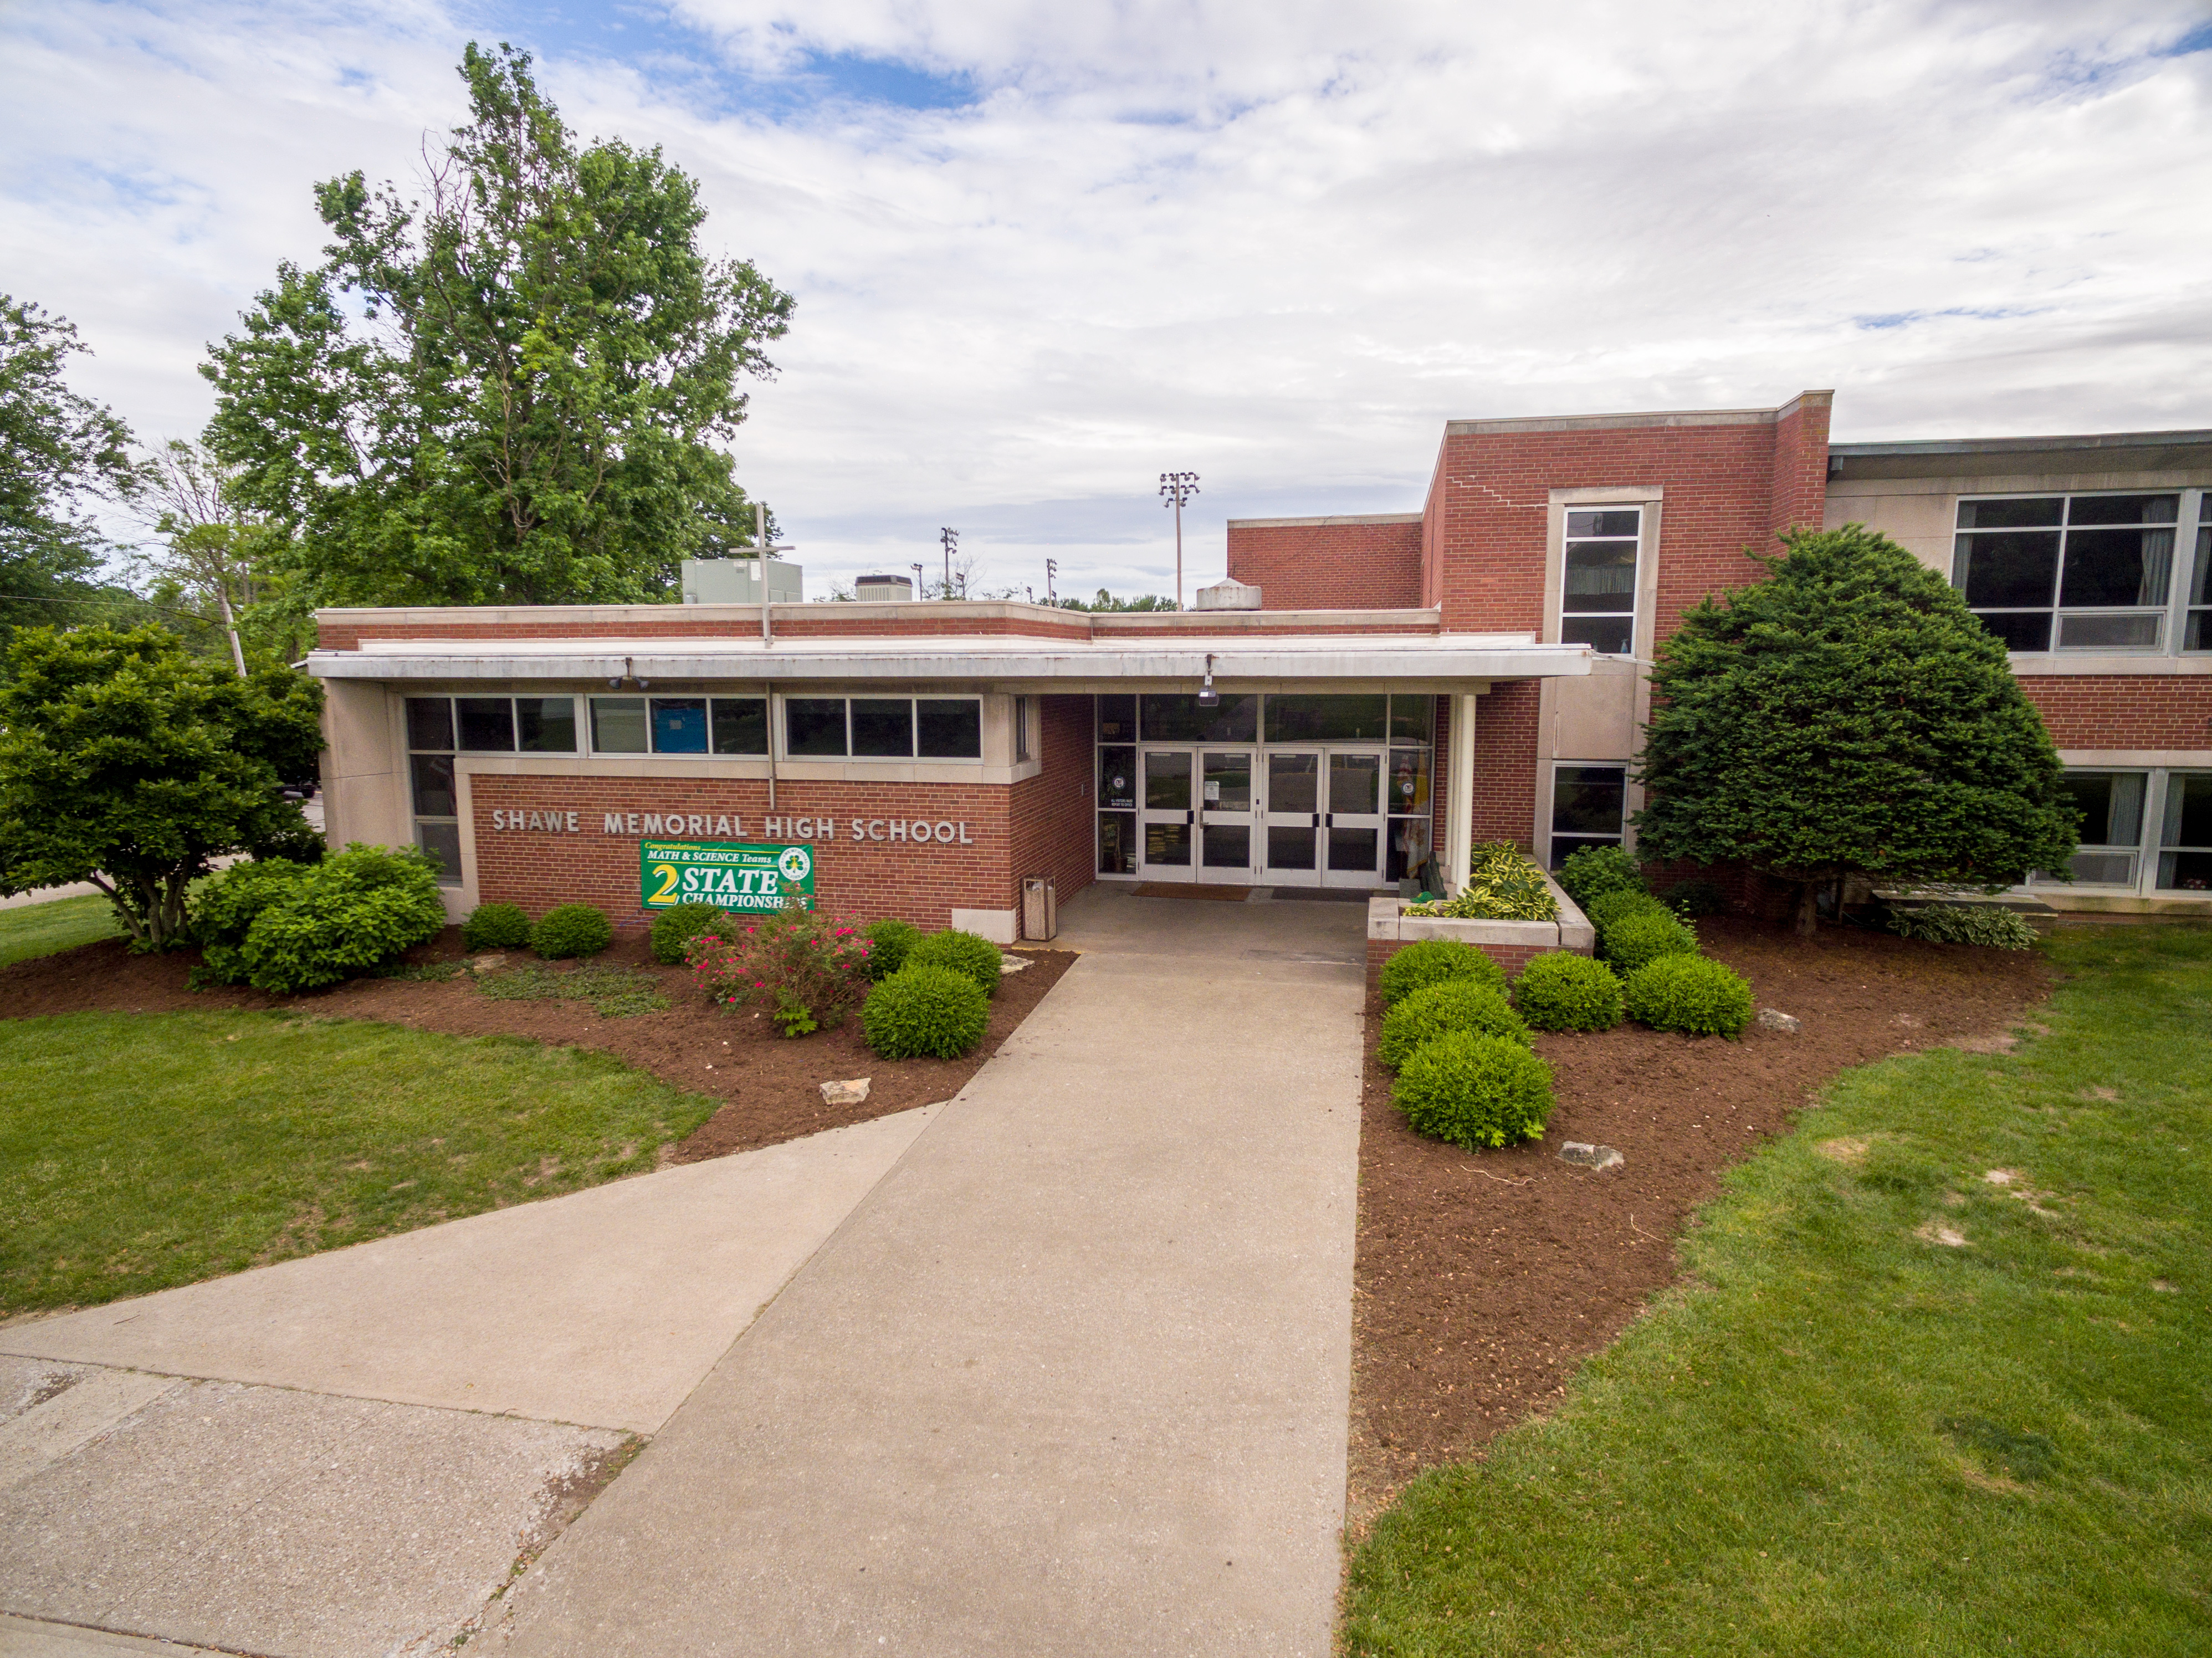 Shawe Memorial High School in Madison Indiana